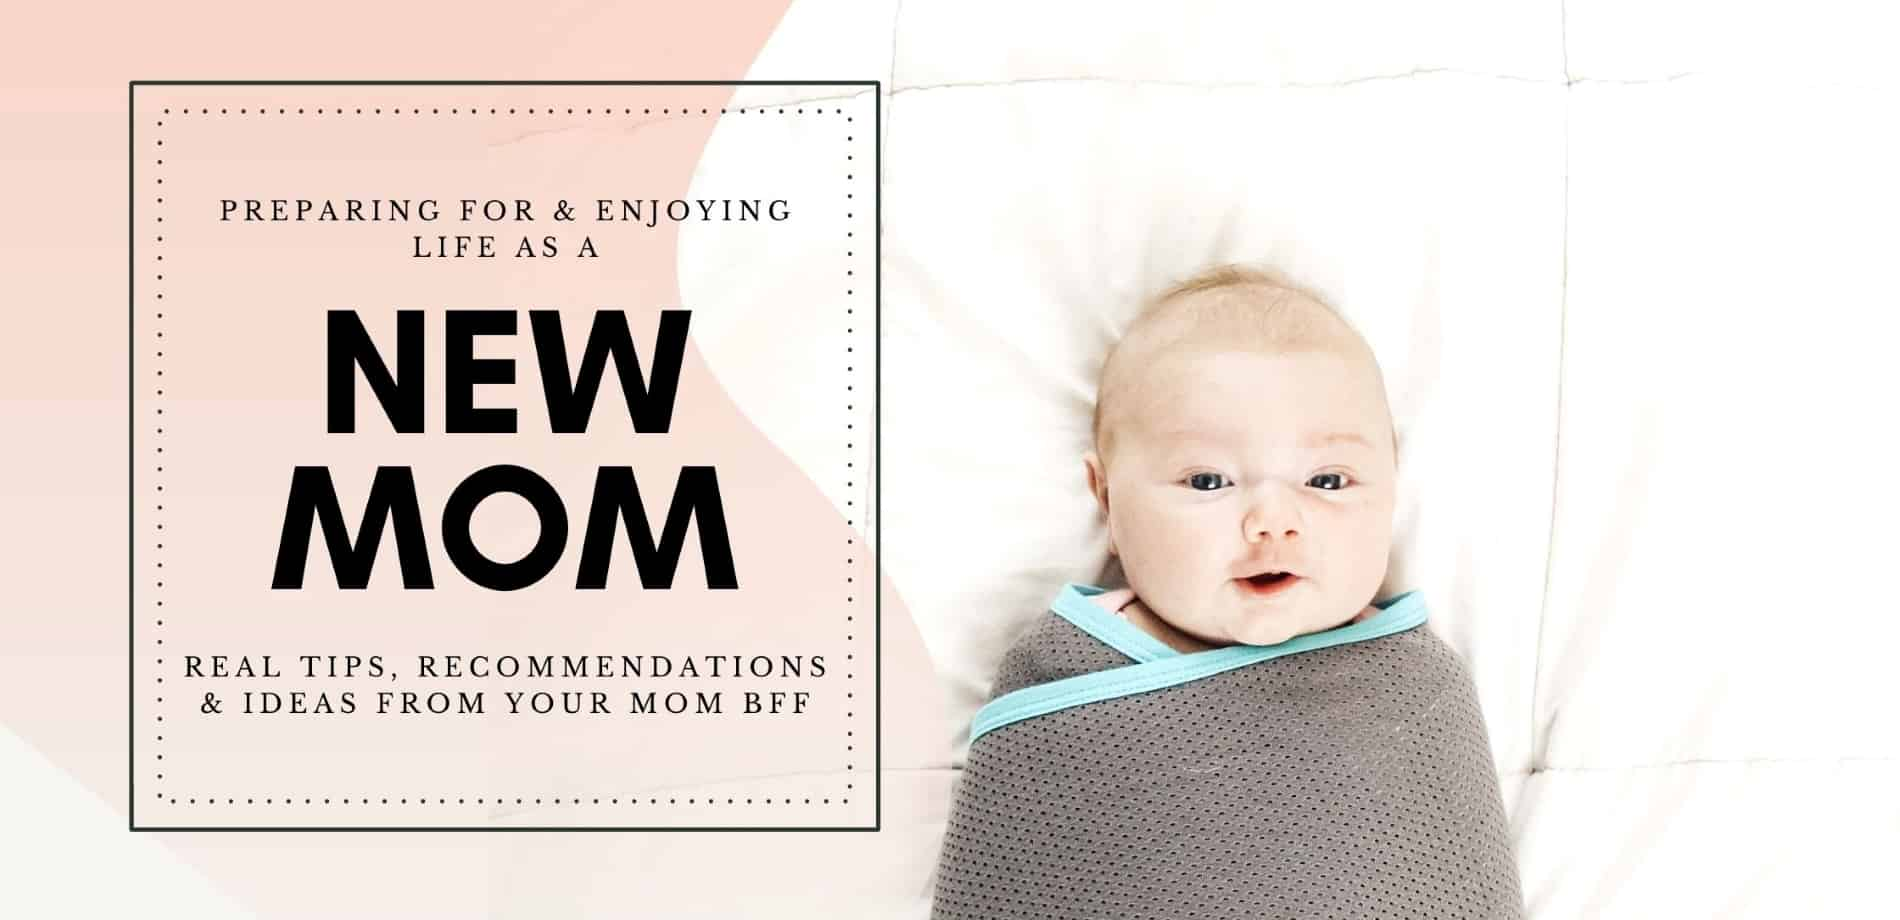 swaddled baby on bed with text new mom tips